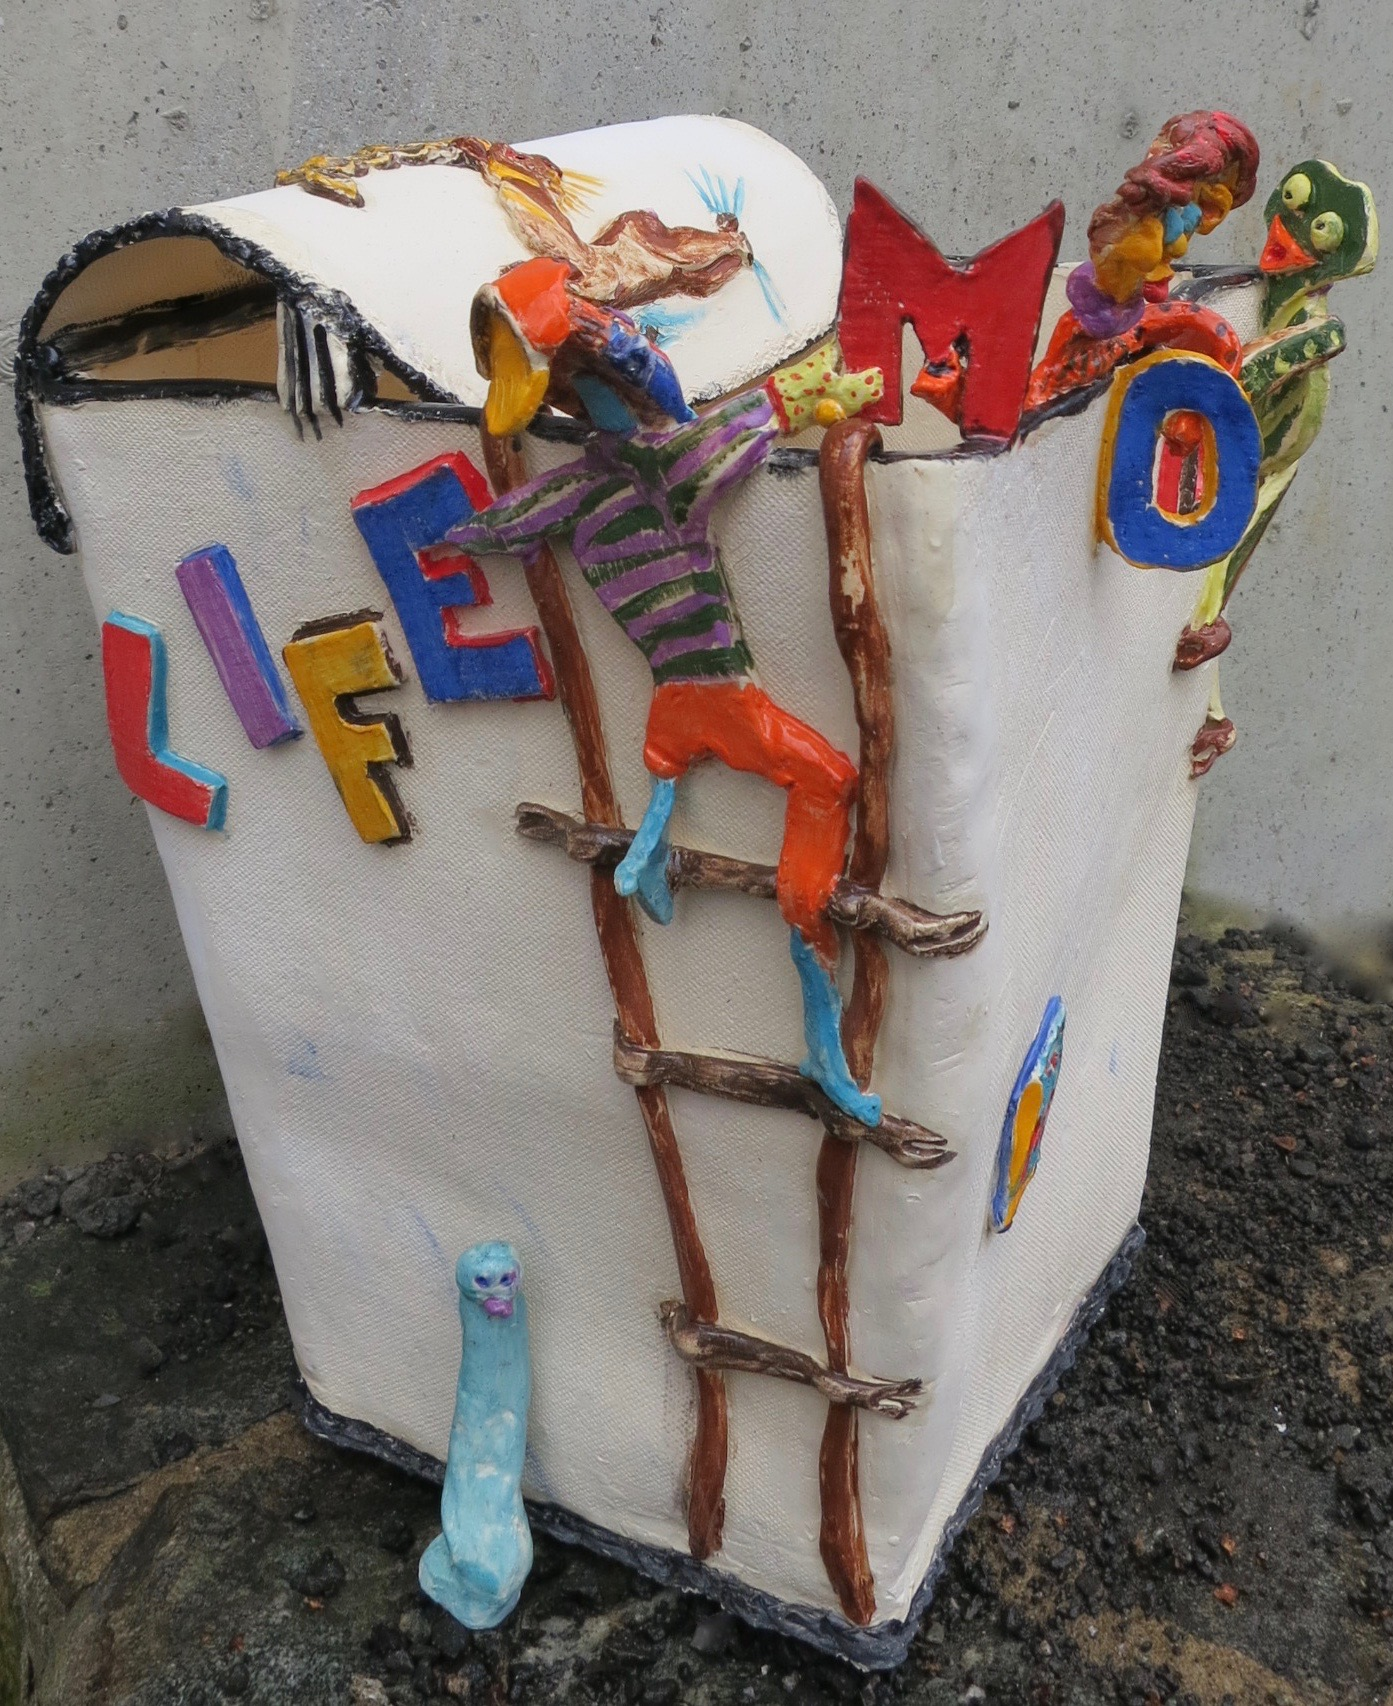 Modern Times, a one foot ceramic garbage pail  and pals, with it's spirit outside(made by my grandson)